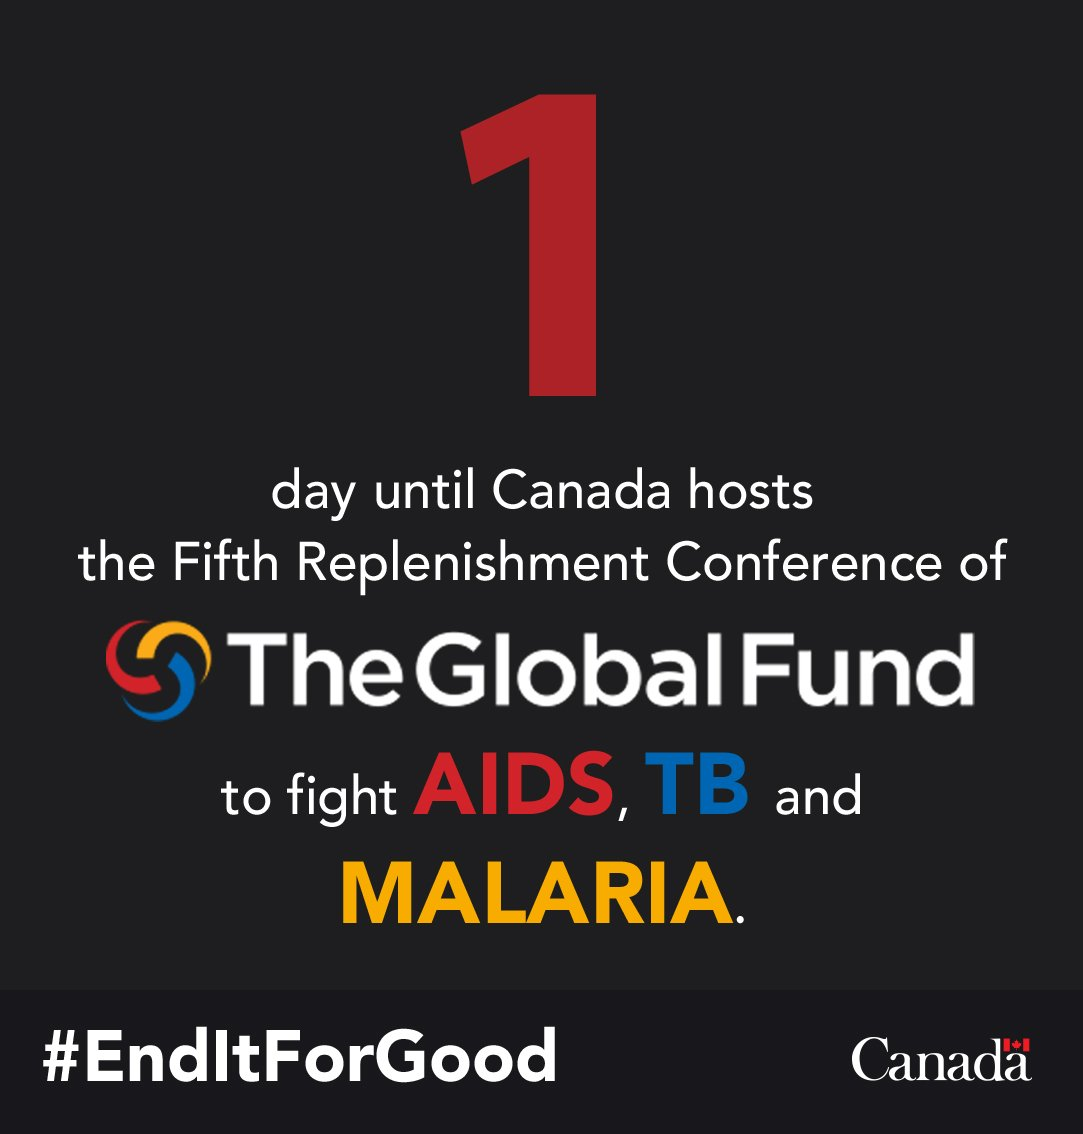 Tomorrow, the world will have the opportunity to take a stand and end these diseases. Join us to #EndItForGood https://t.co/72zxgwsE2f